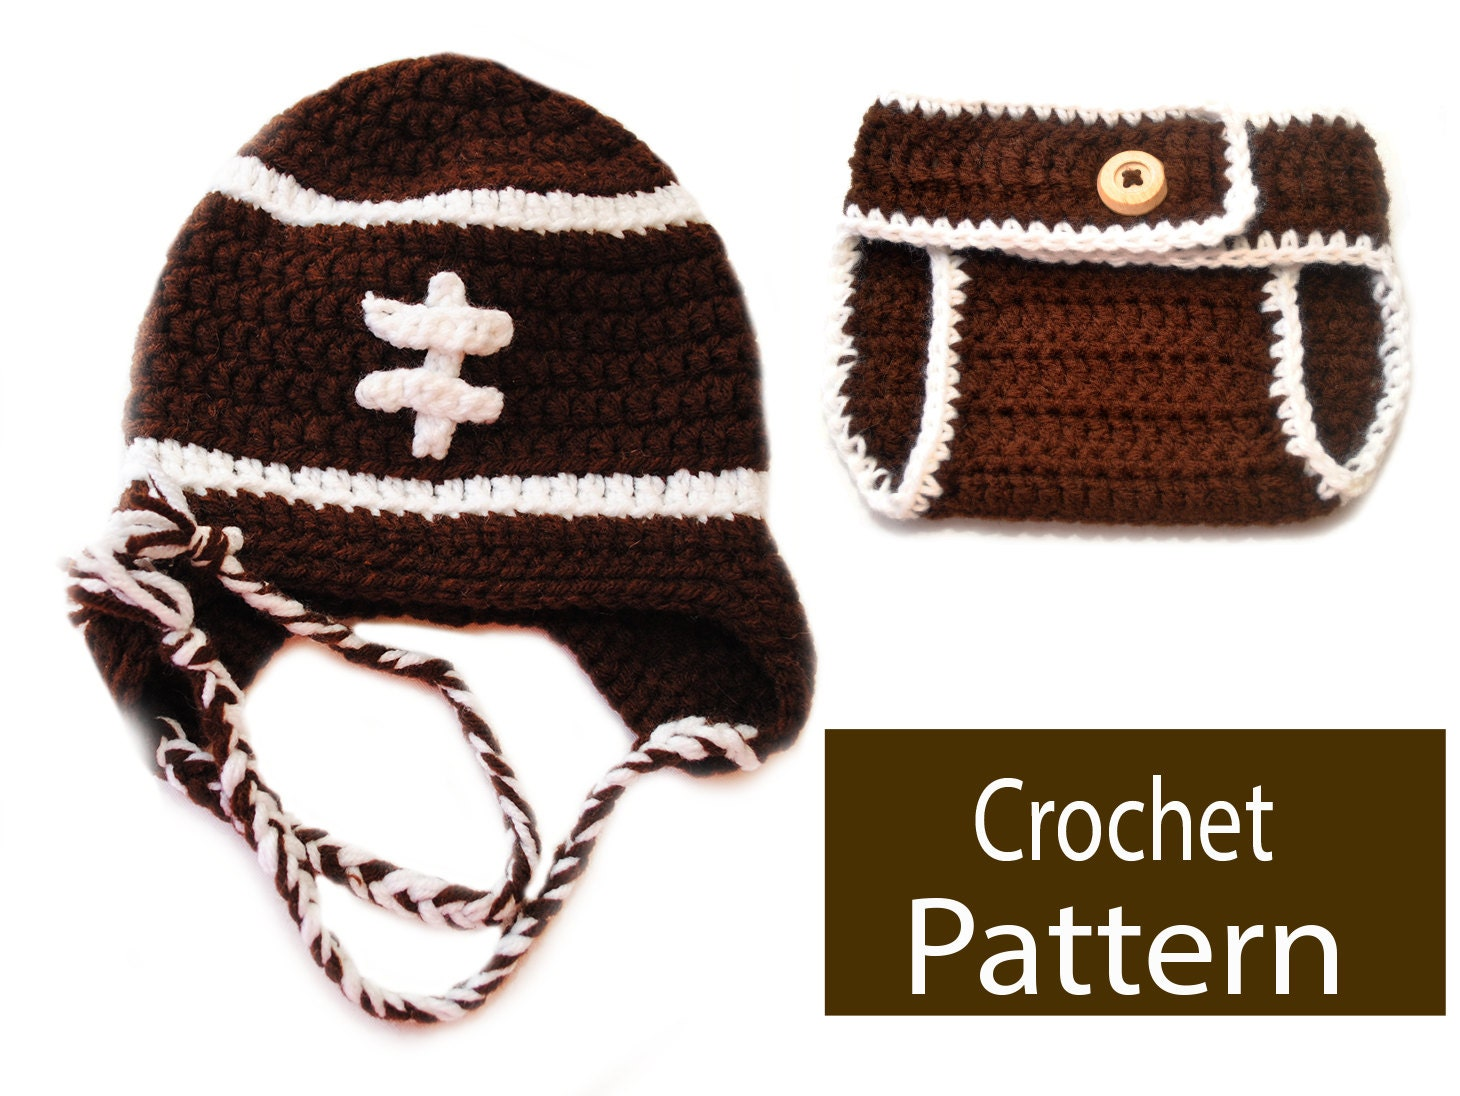 Free Crochet Pattern Football Diaper Cover : Pattern Football Hat & Diaper Cover Set B1110/DC116 photo